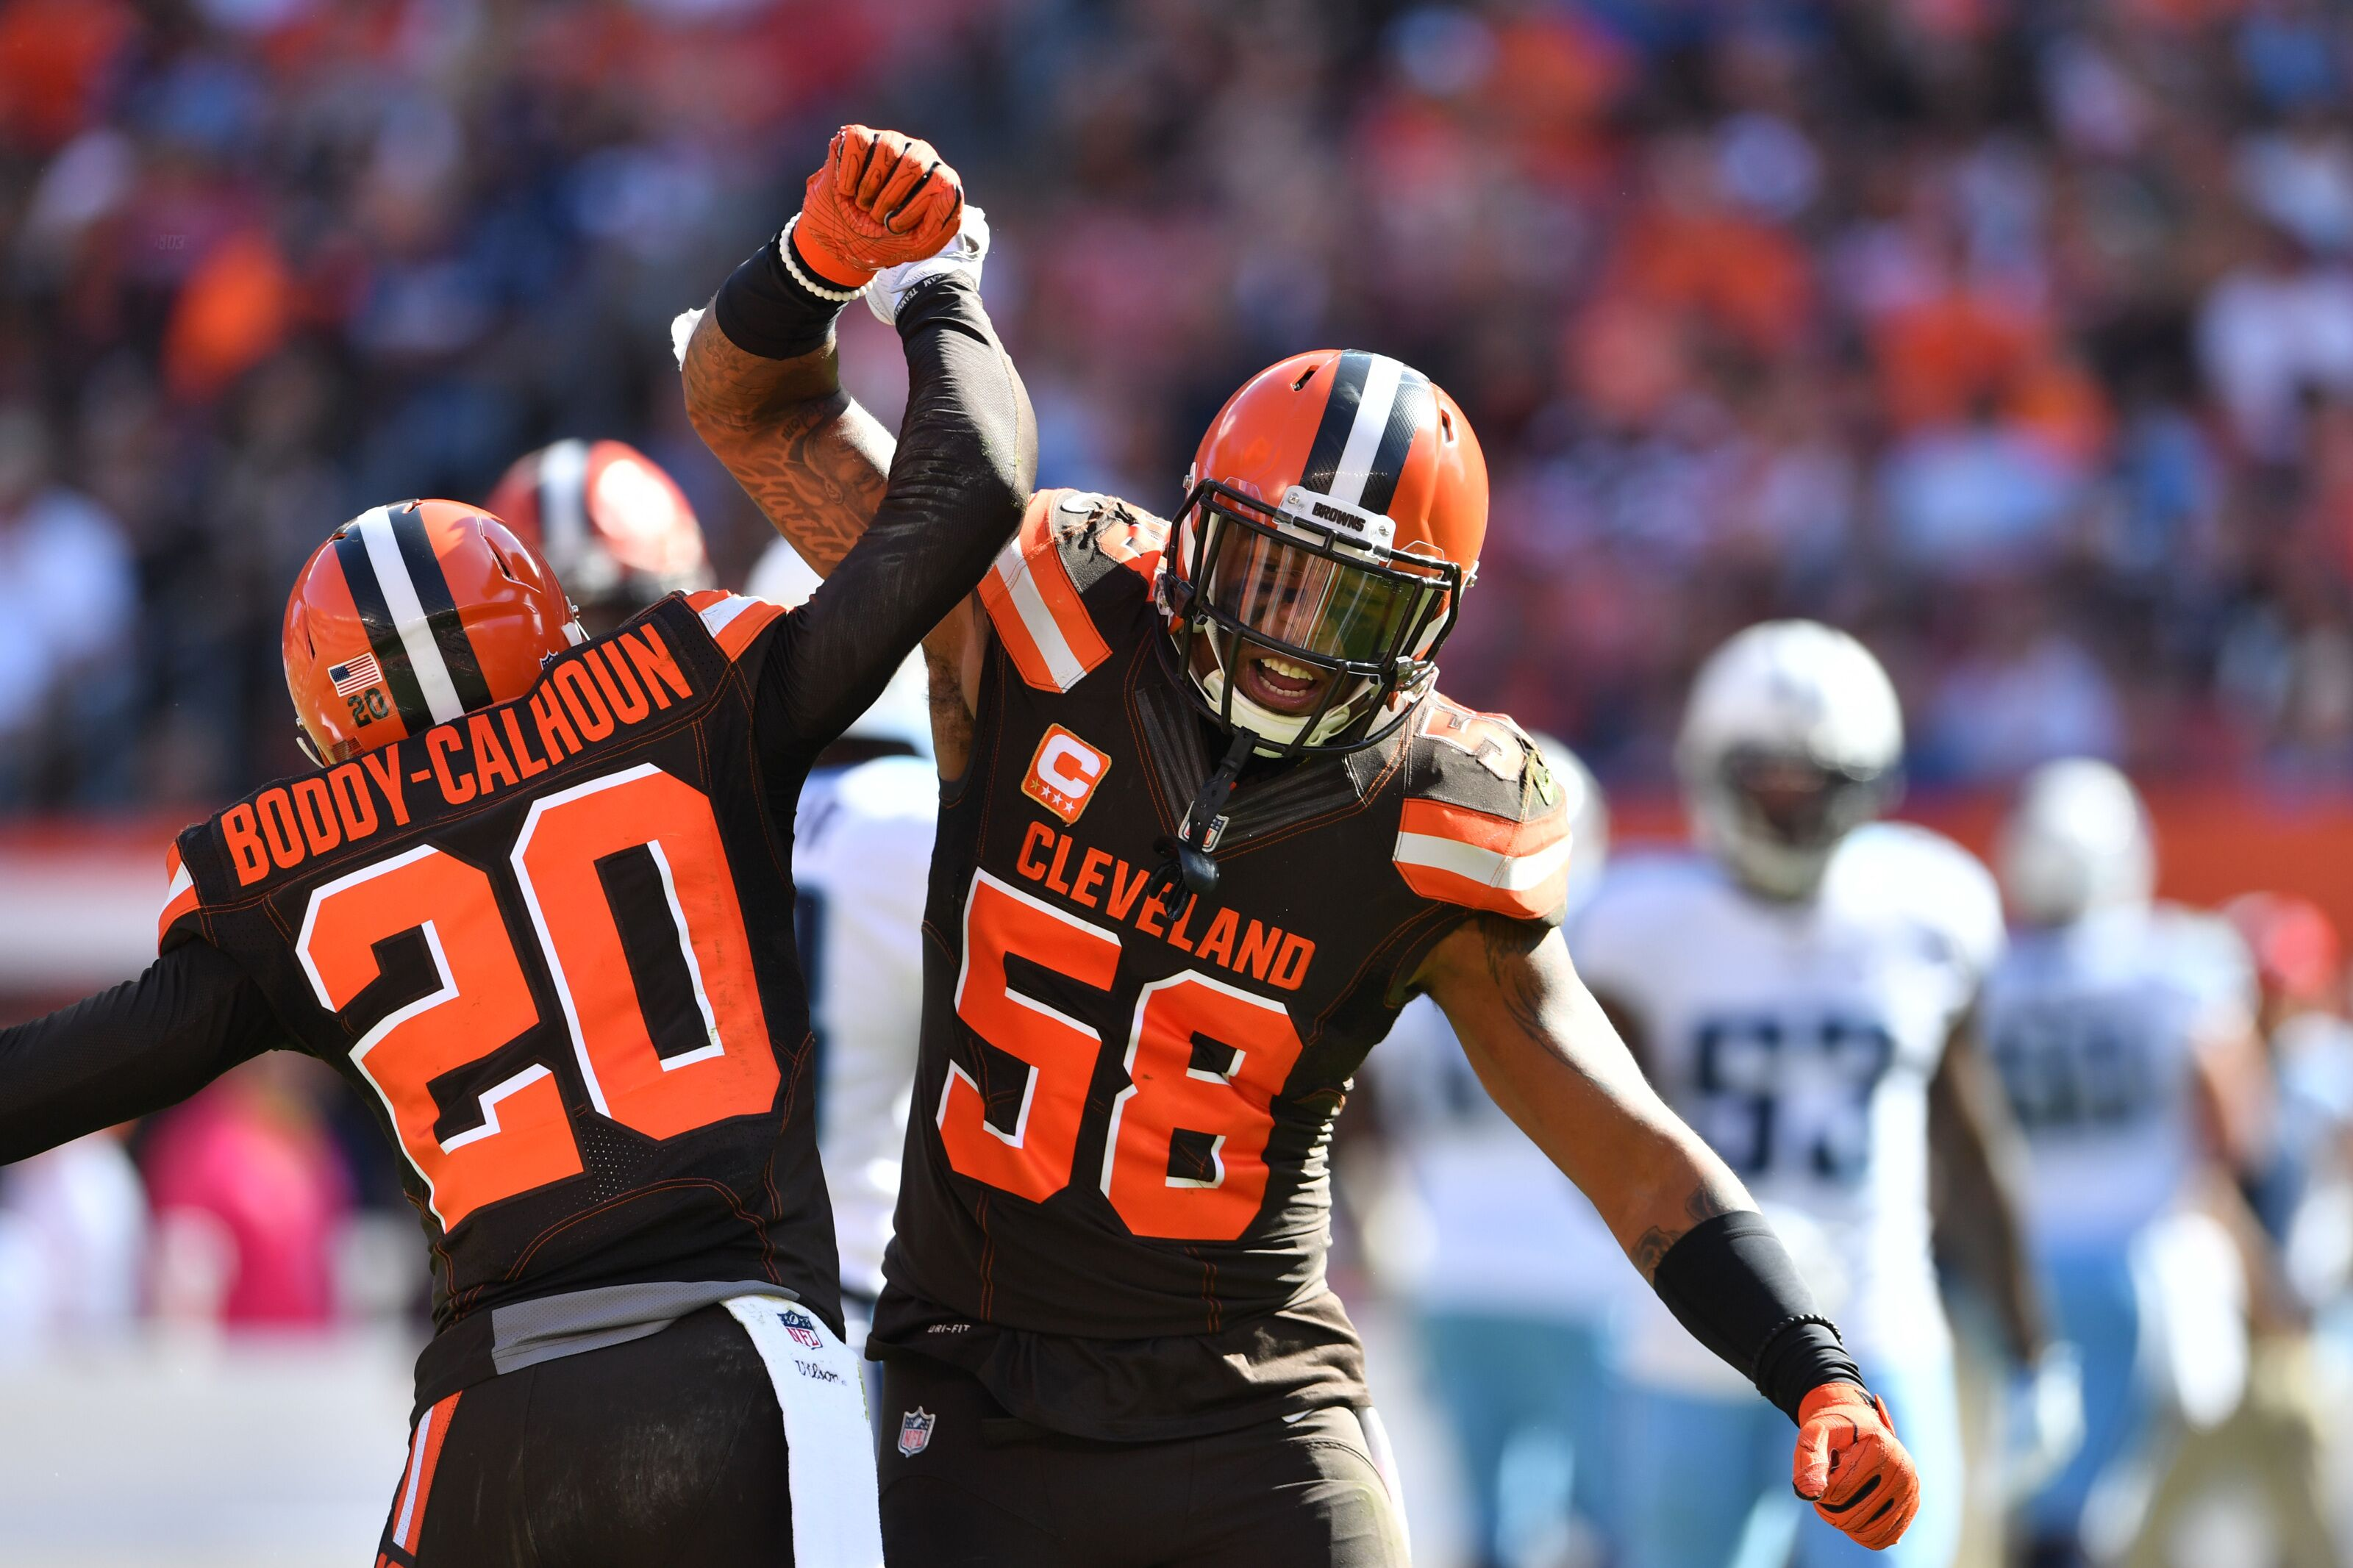 Cleveland Browns: What happens to Briean Boddy-Calhoun now?